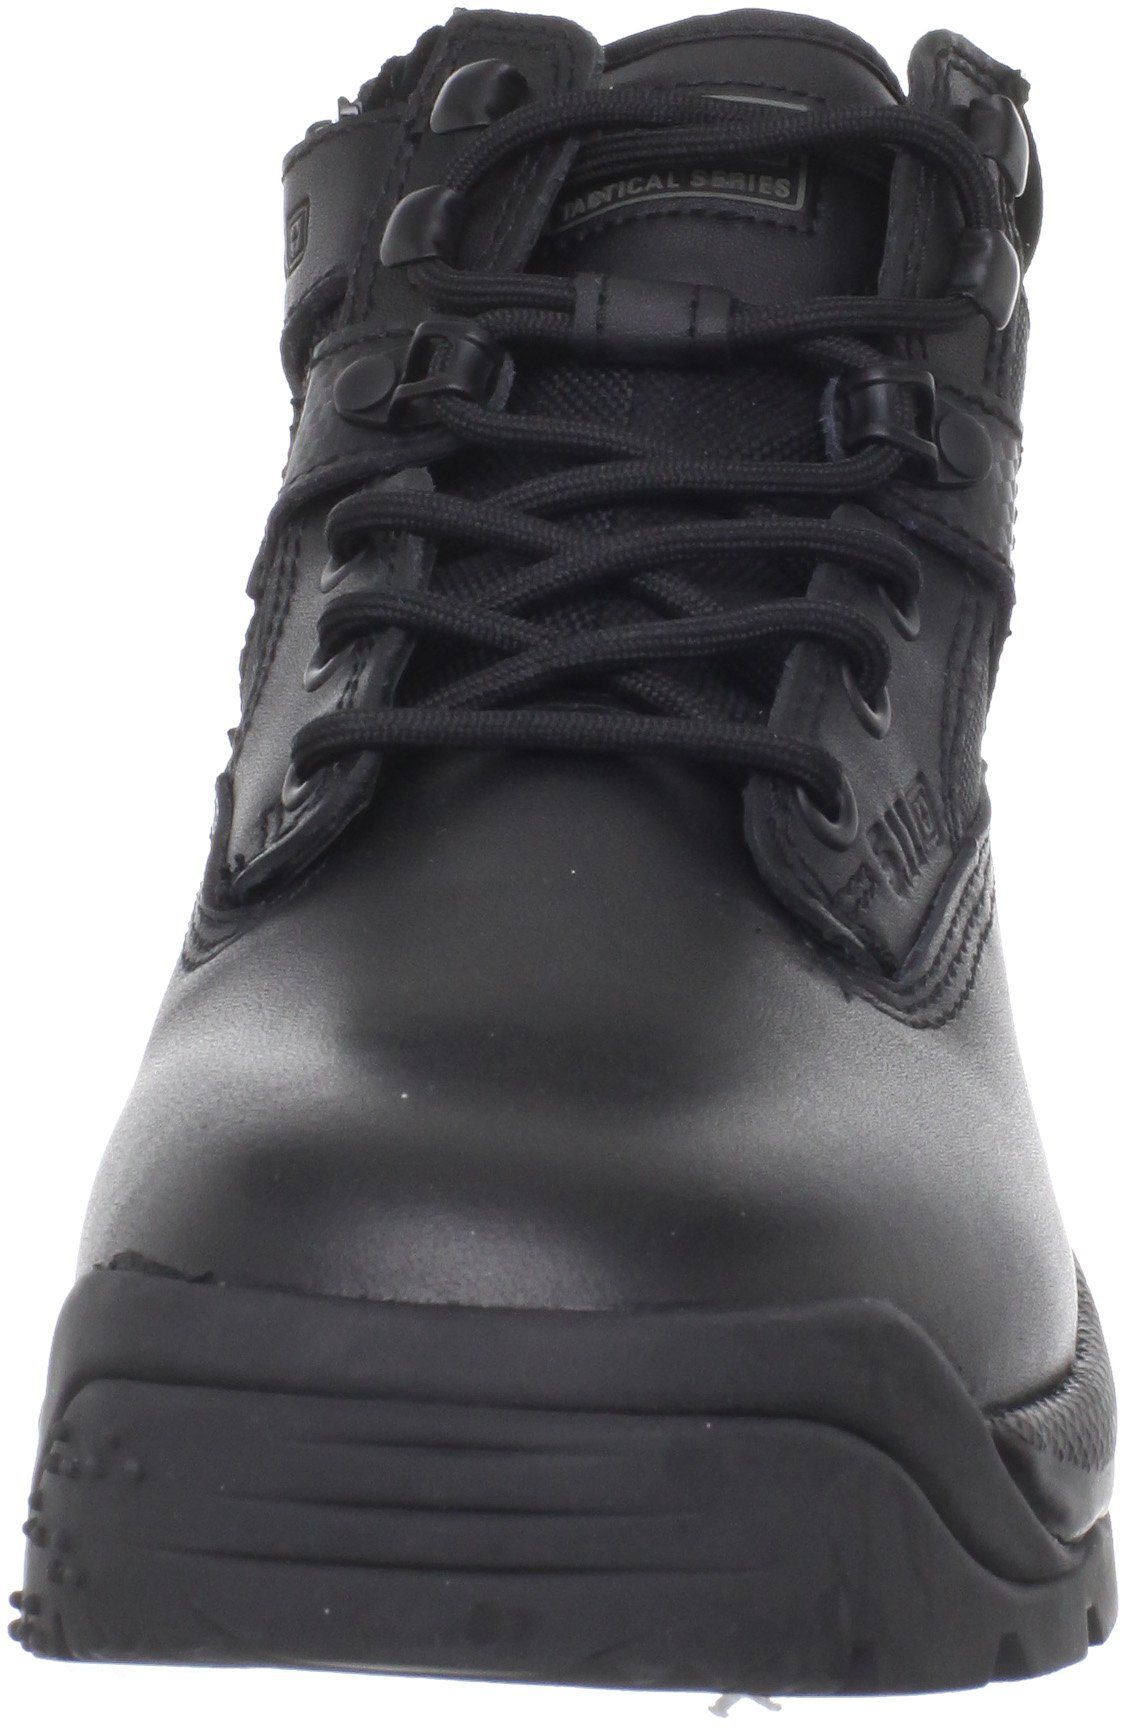 5.11 Women's A.T.A.C. 6'' Side Zip Tactical Boots, Style 12025, Black, 6 R by 5.11 (Image #4)